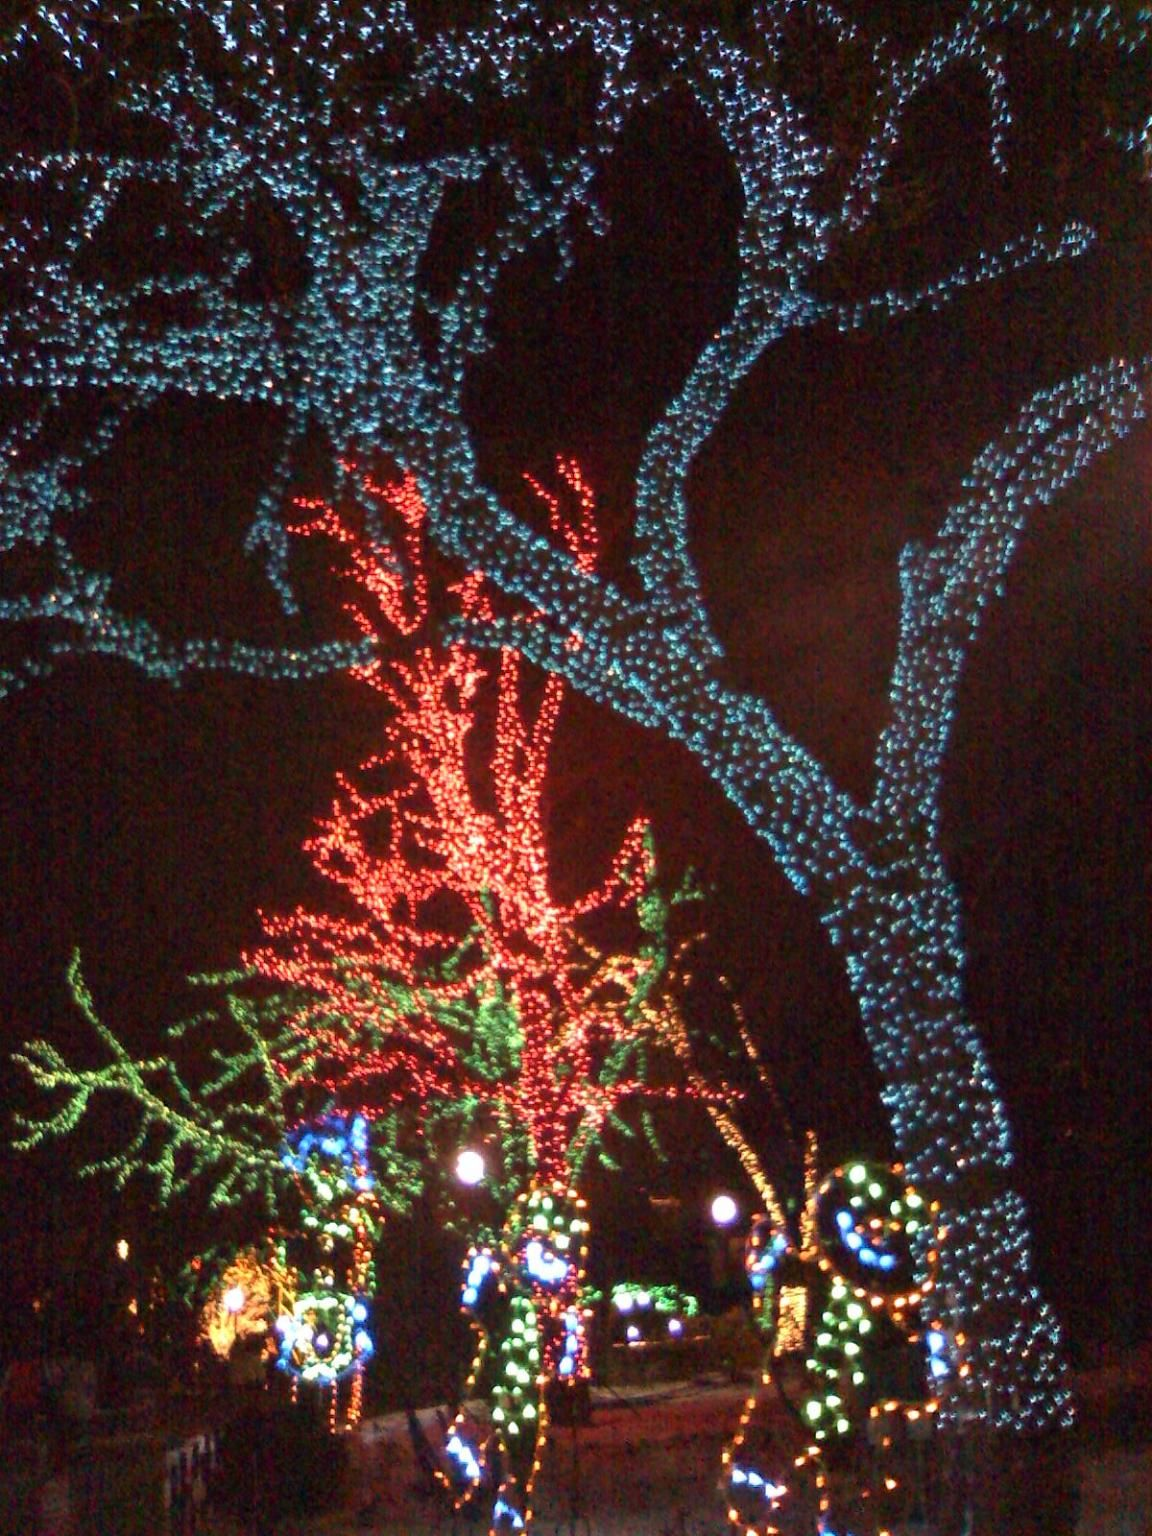 Christmas Lights Phoenix 2019 Zoolights at the Phoenix Zoo every Christmas | The Great Southwest